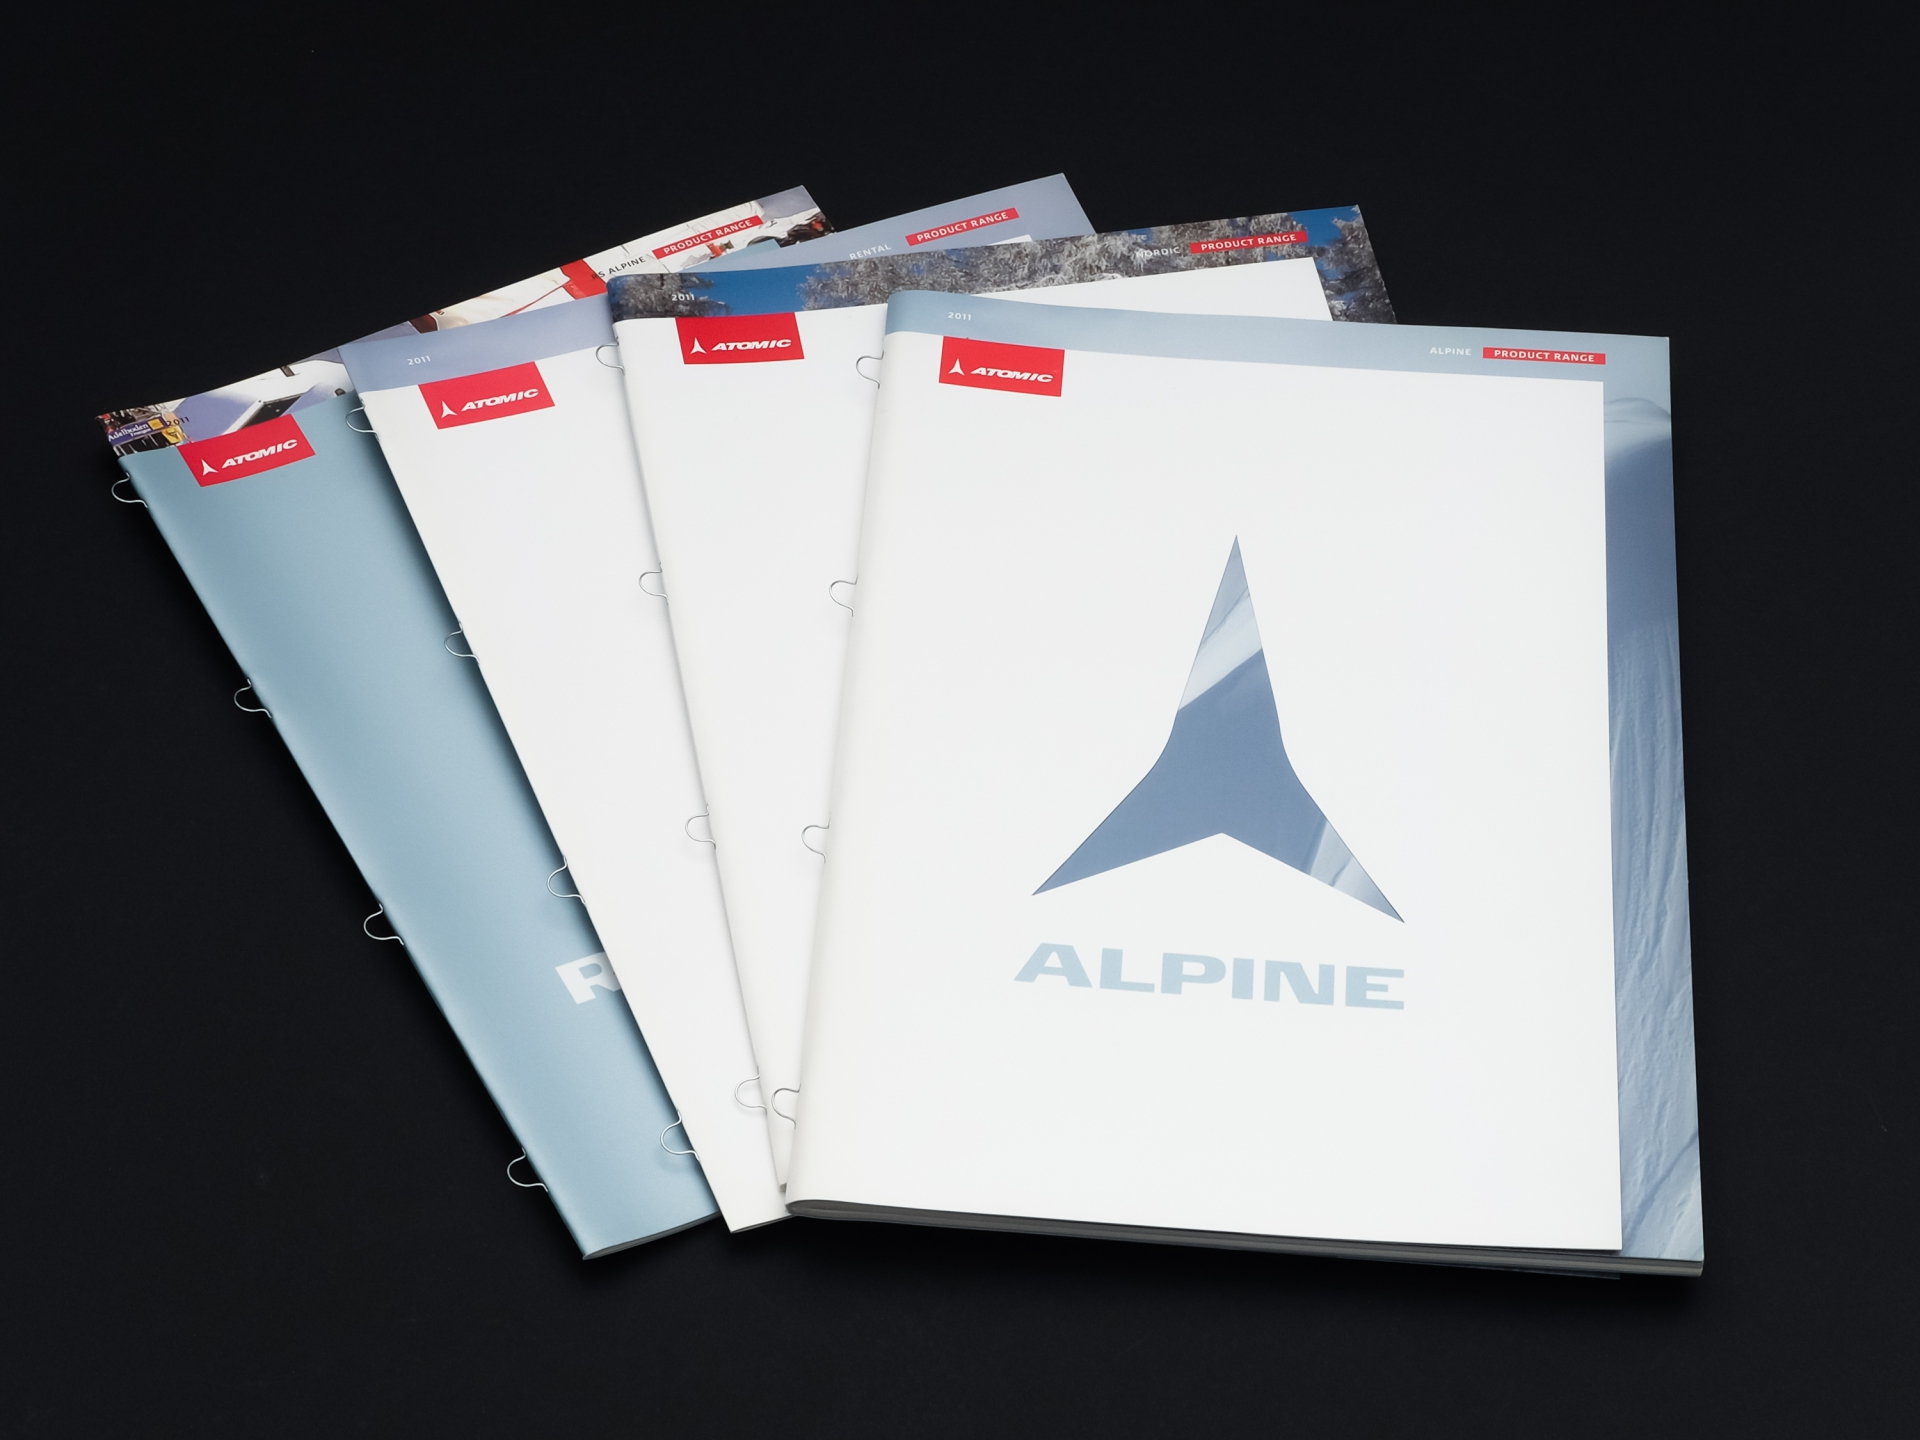 Grafikum Atomic dealer catalogues